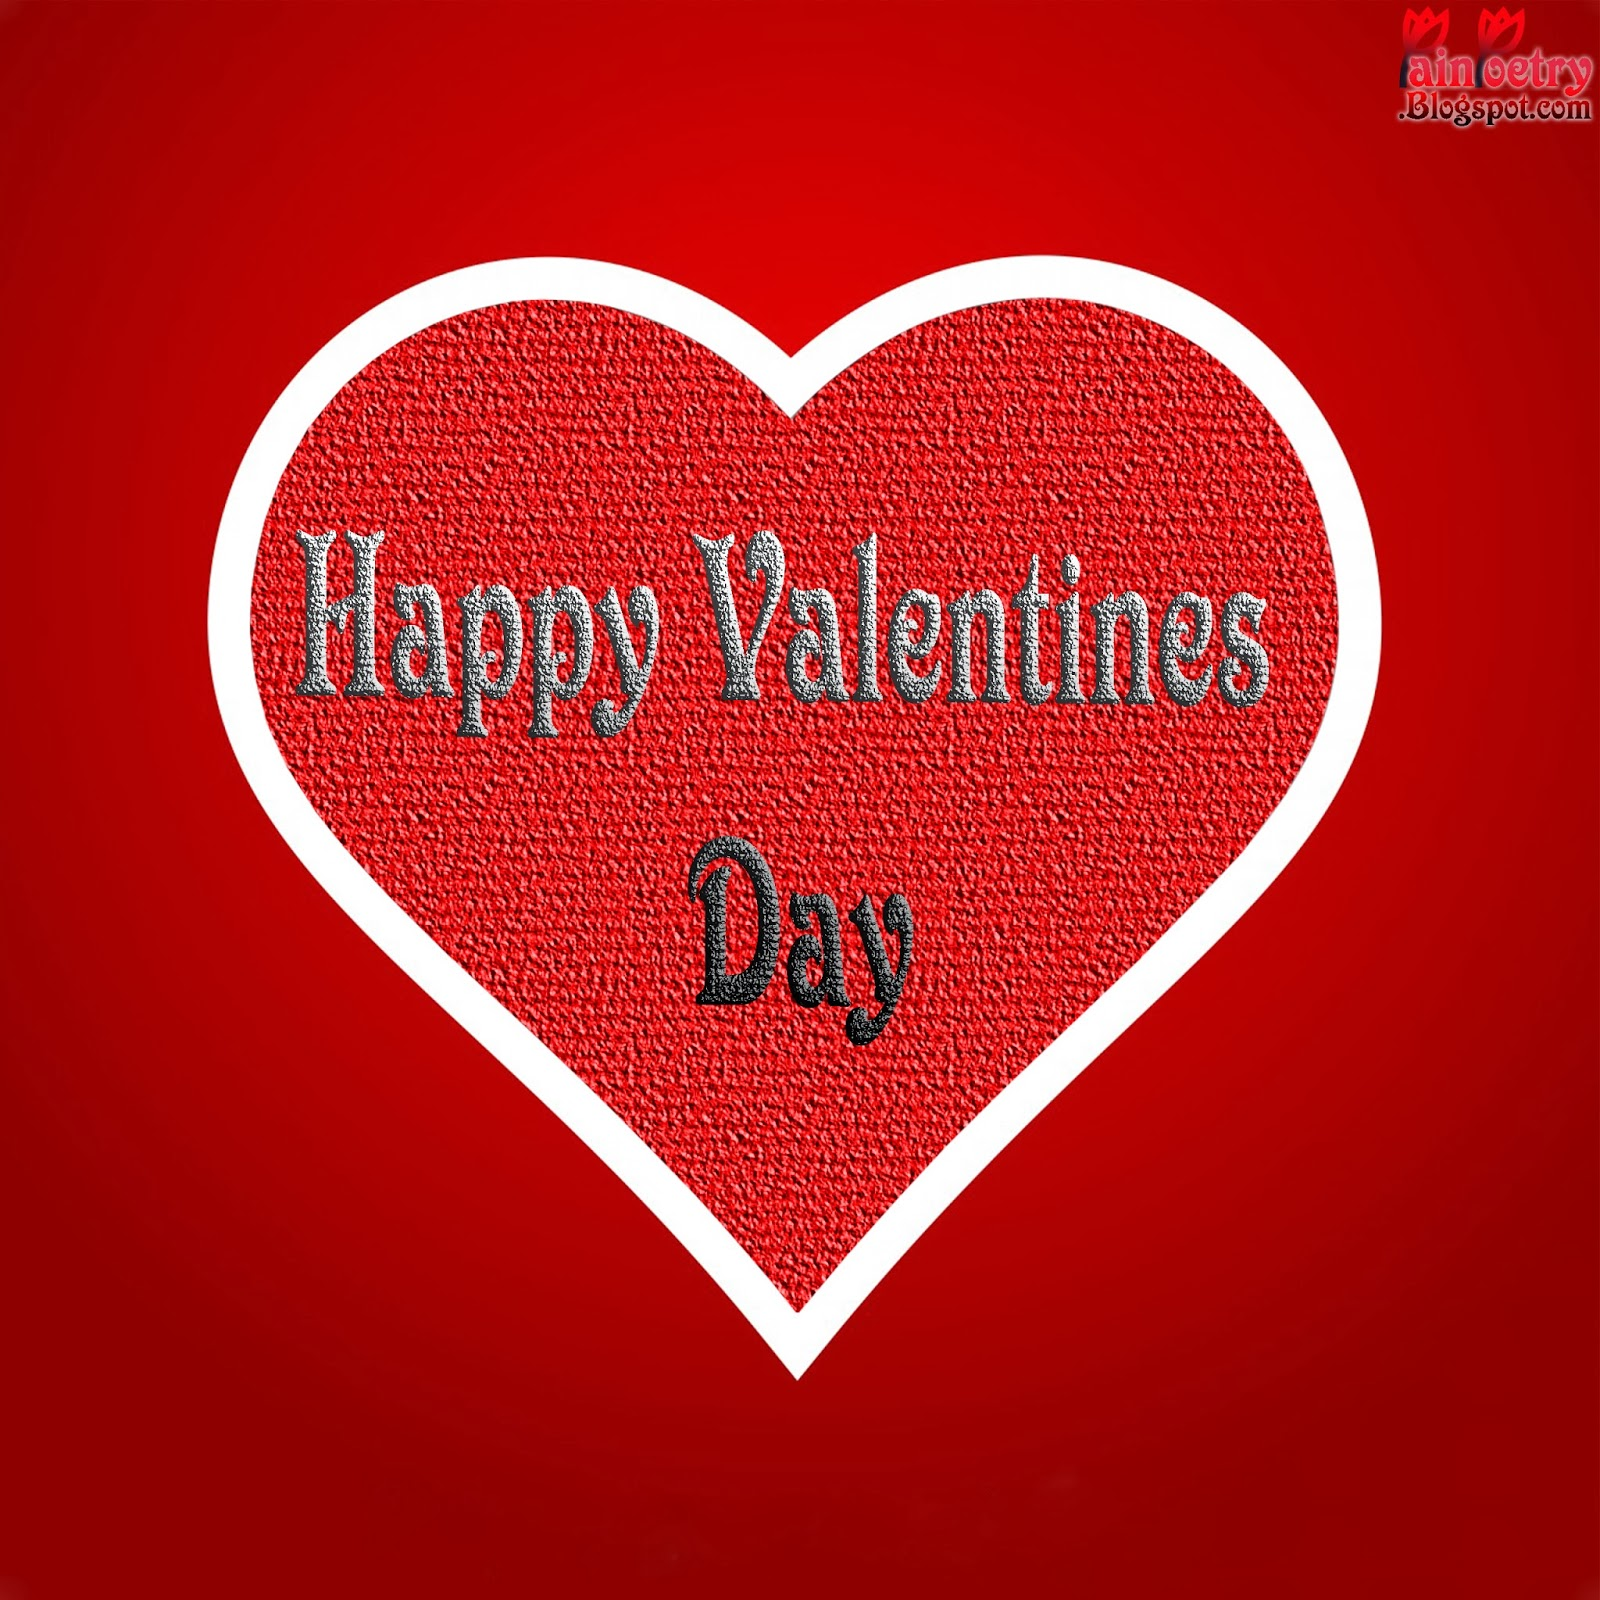 Happy-Valentines-Day-Wishes-Walpaper-With-Heart-Image-HD-Wide